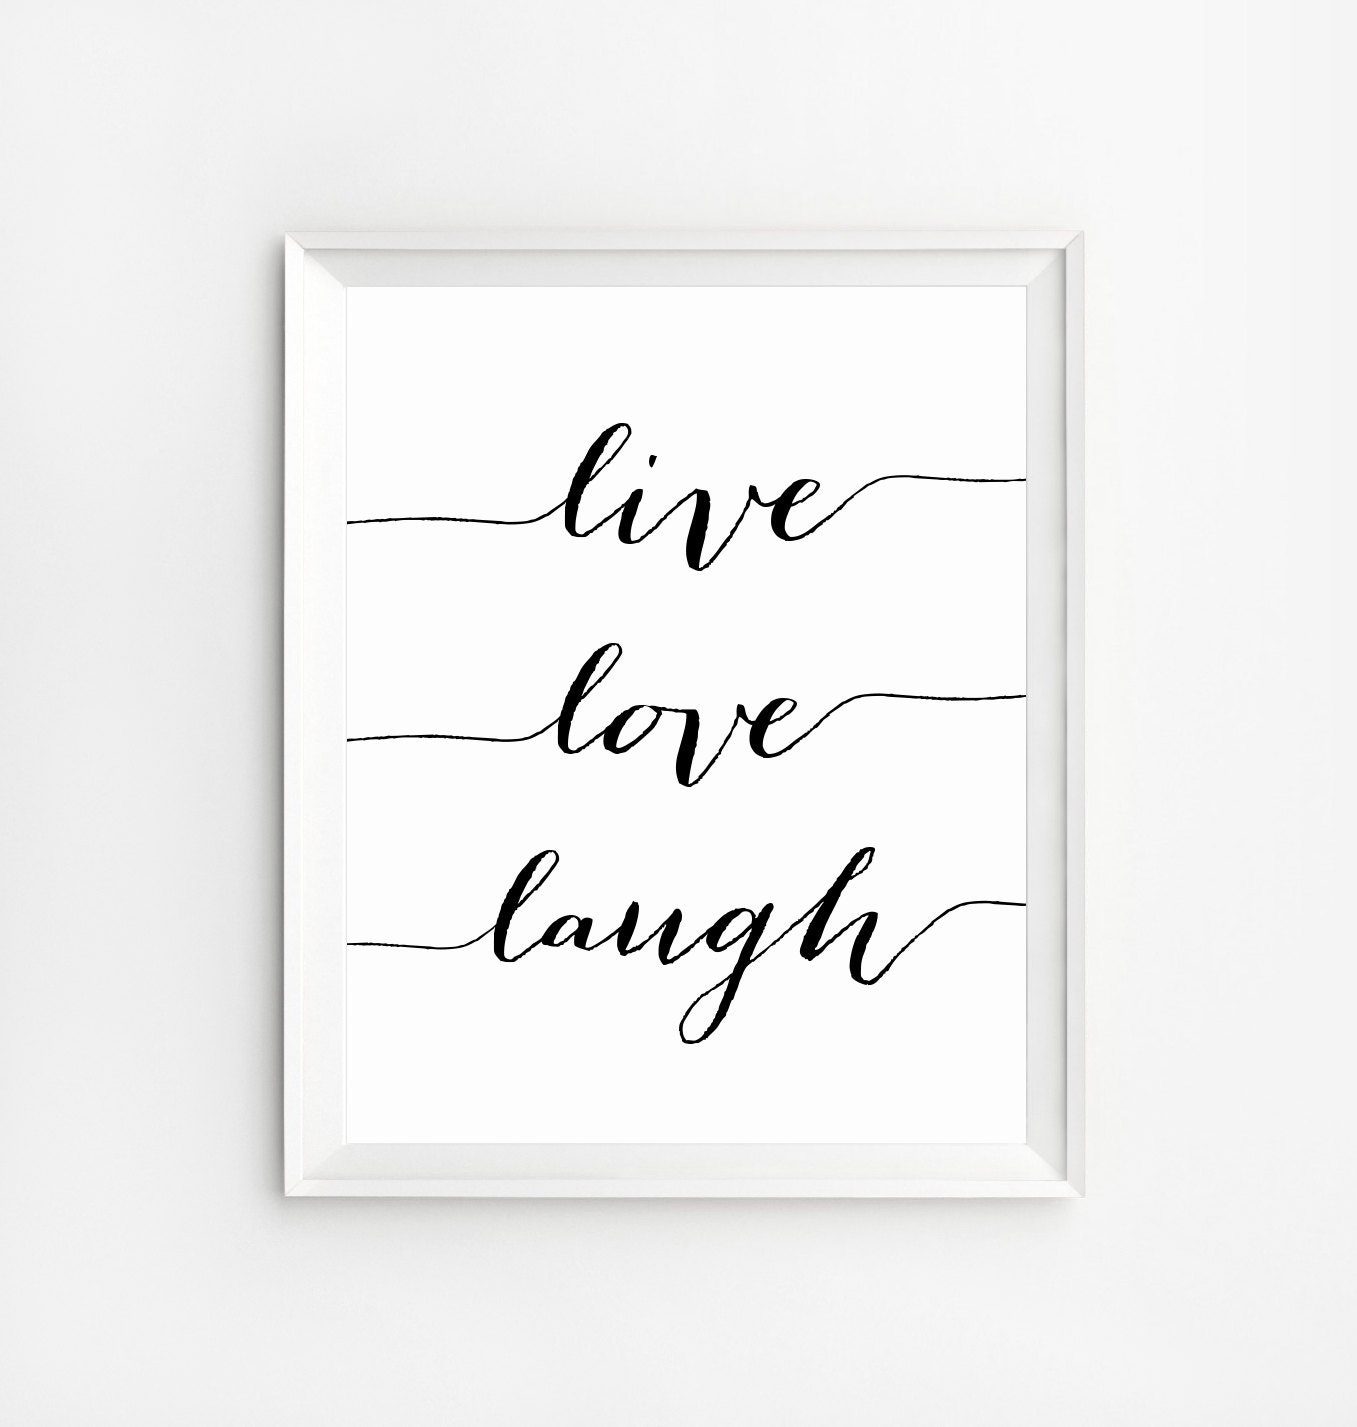 Live Love Laugh Quotes Live Love Laugh Positive Quotes Wall Art Print Wall Art